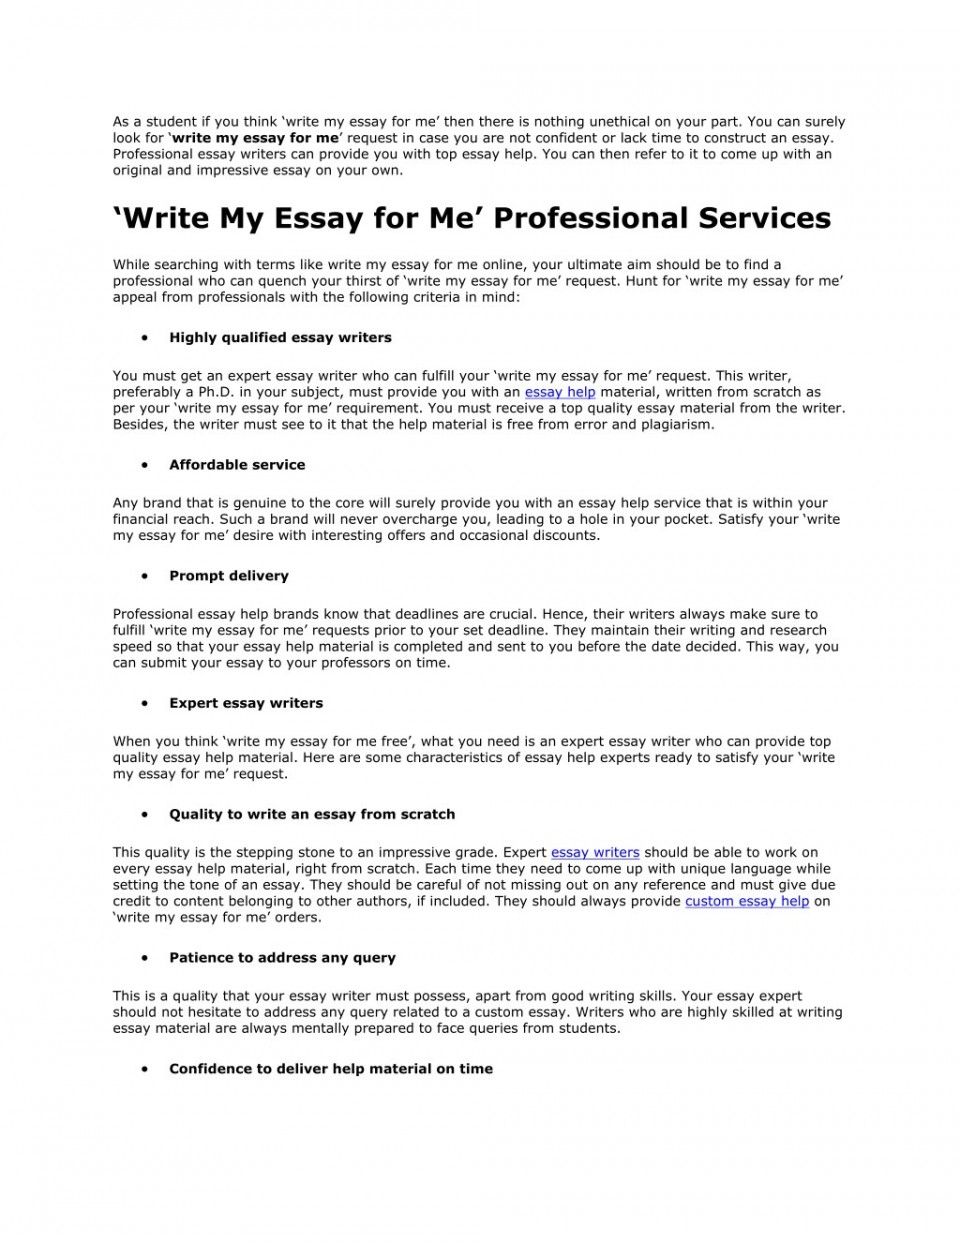 017 Write My Essay For Me Example As Student If You Think Surprising Free Online Cheap App 960